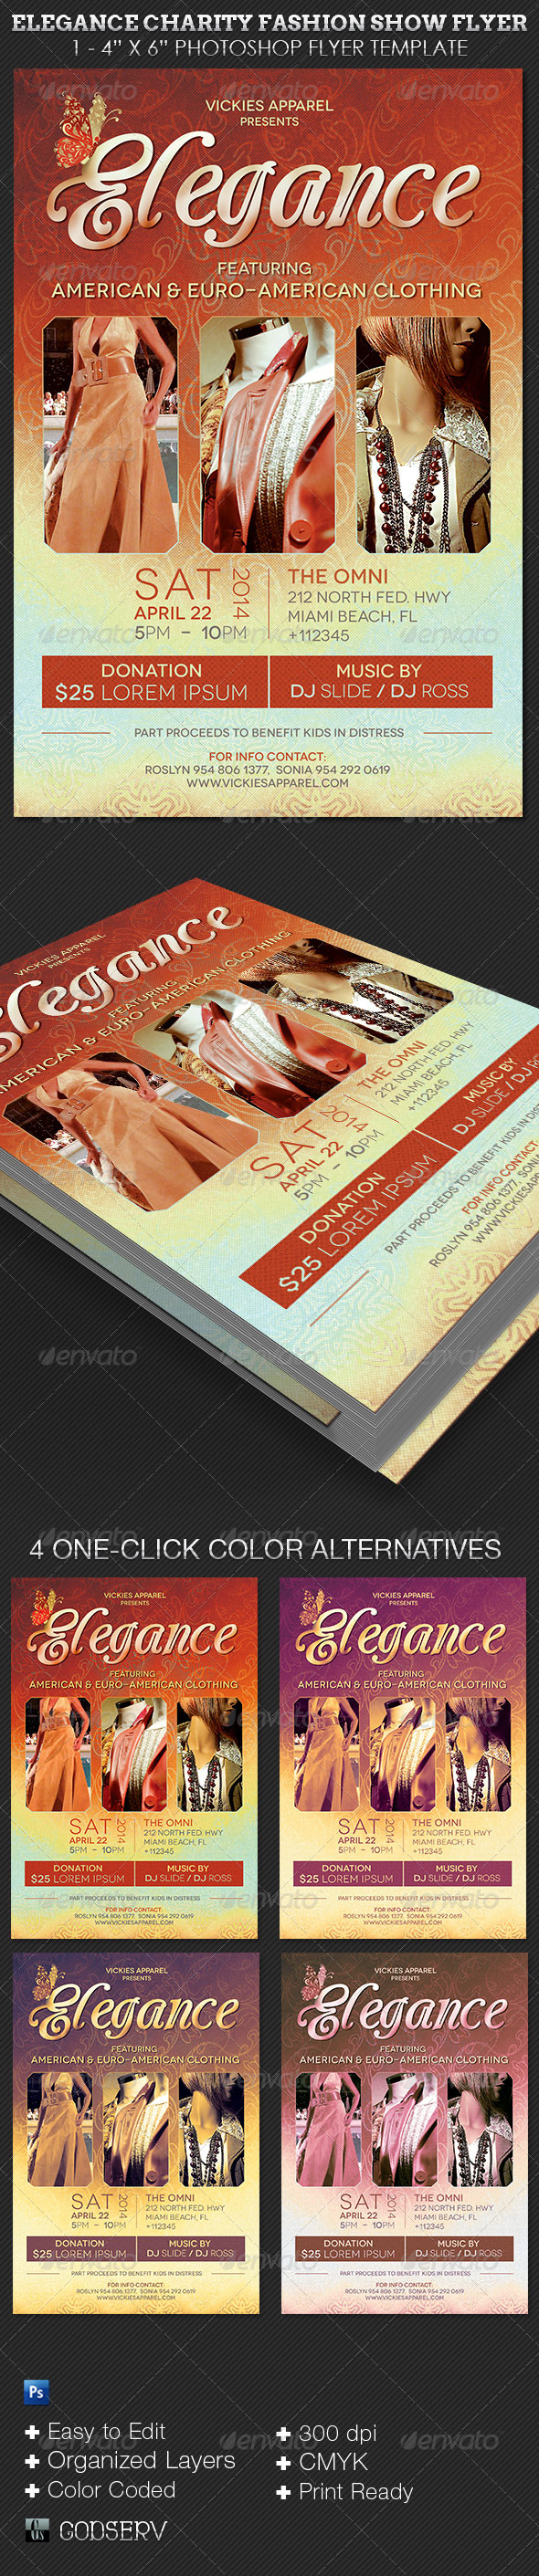 Elegance Charity Fashion Show Flyer Template  - Events Flyers